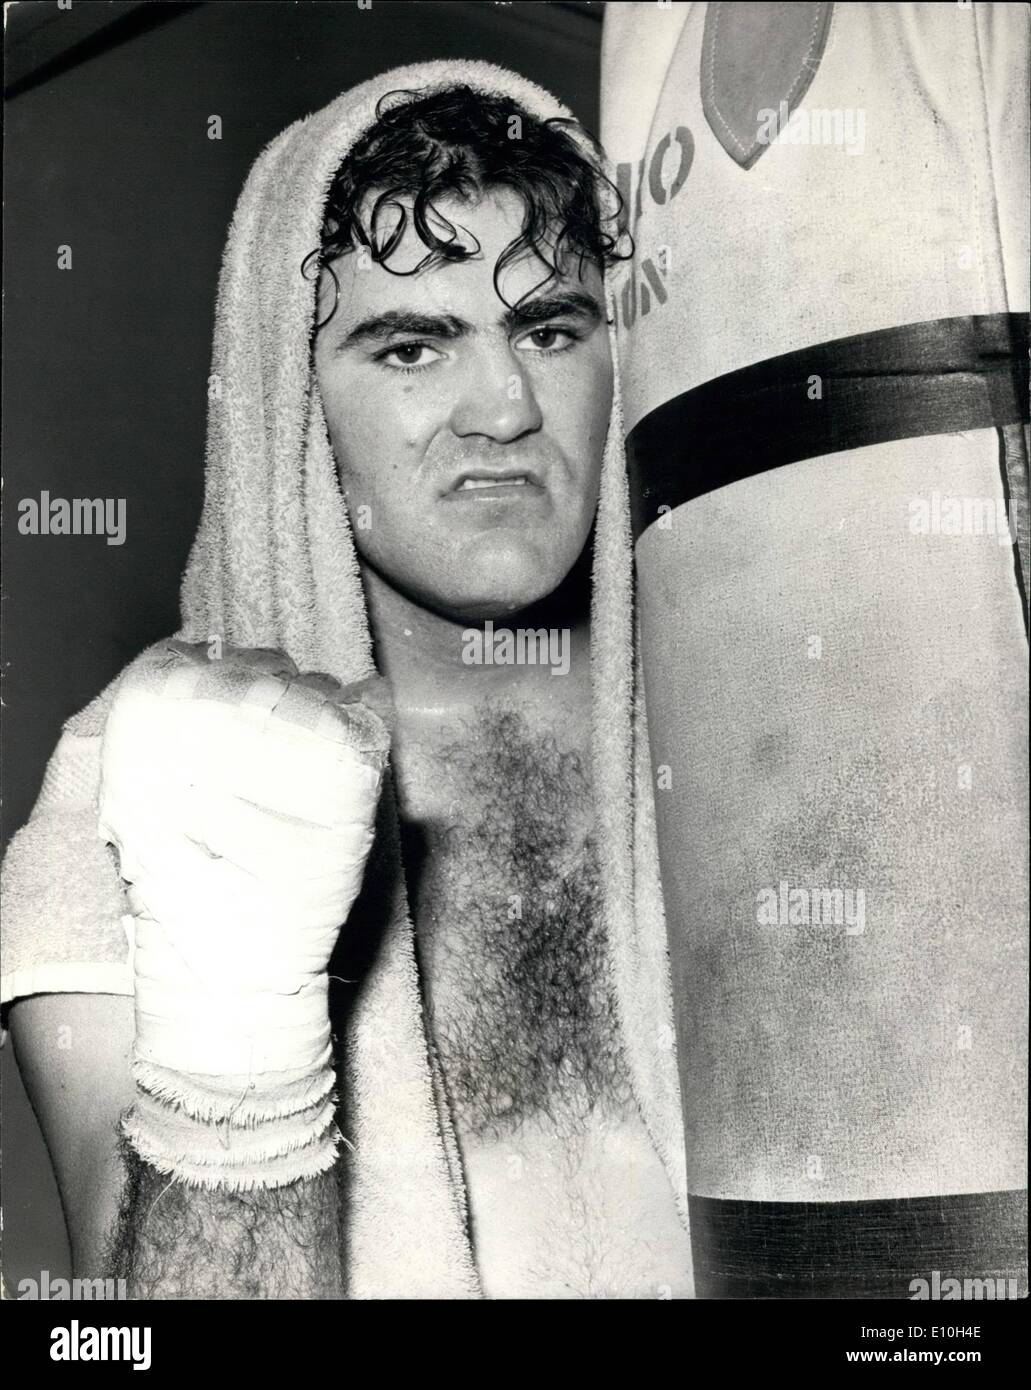 Nov. 11, 1972 - Tony Doyle To Meet Joe Bugner: American Mormon Tony Doyle, pictured at the Noble Art Gymnasium today, during training for his heavyweight contest against Joe Bugner at Wembley on November 14th. - Stock Image